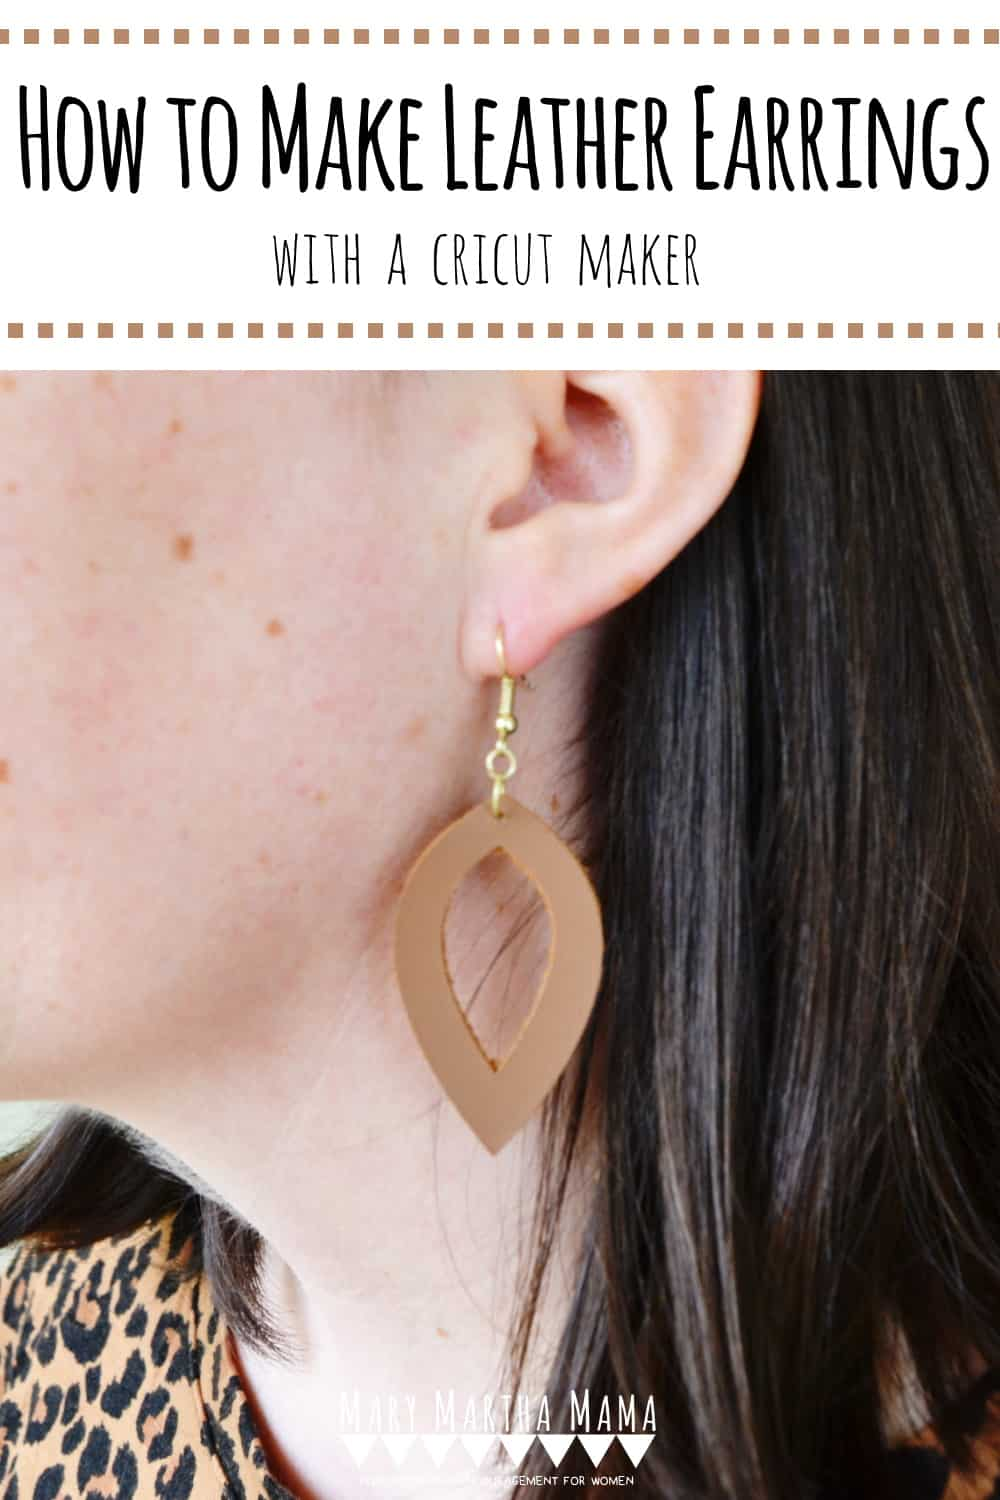 Follow this simple step by step tutorial with pictures to learn how to make leather earrings with your Cricut Maker.  Three styles featured in this project.